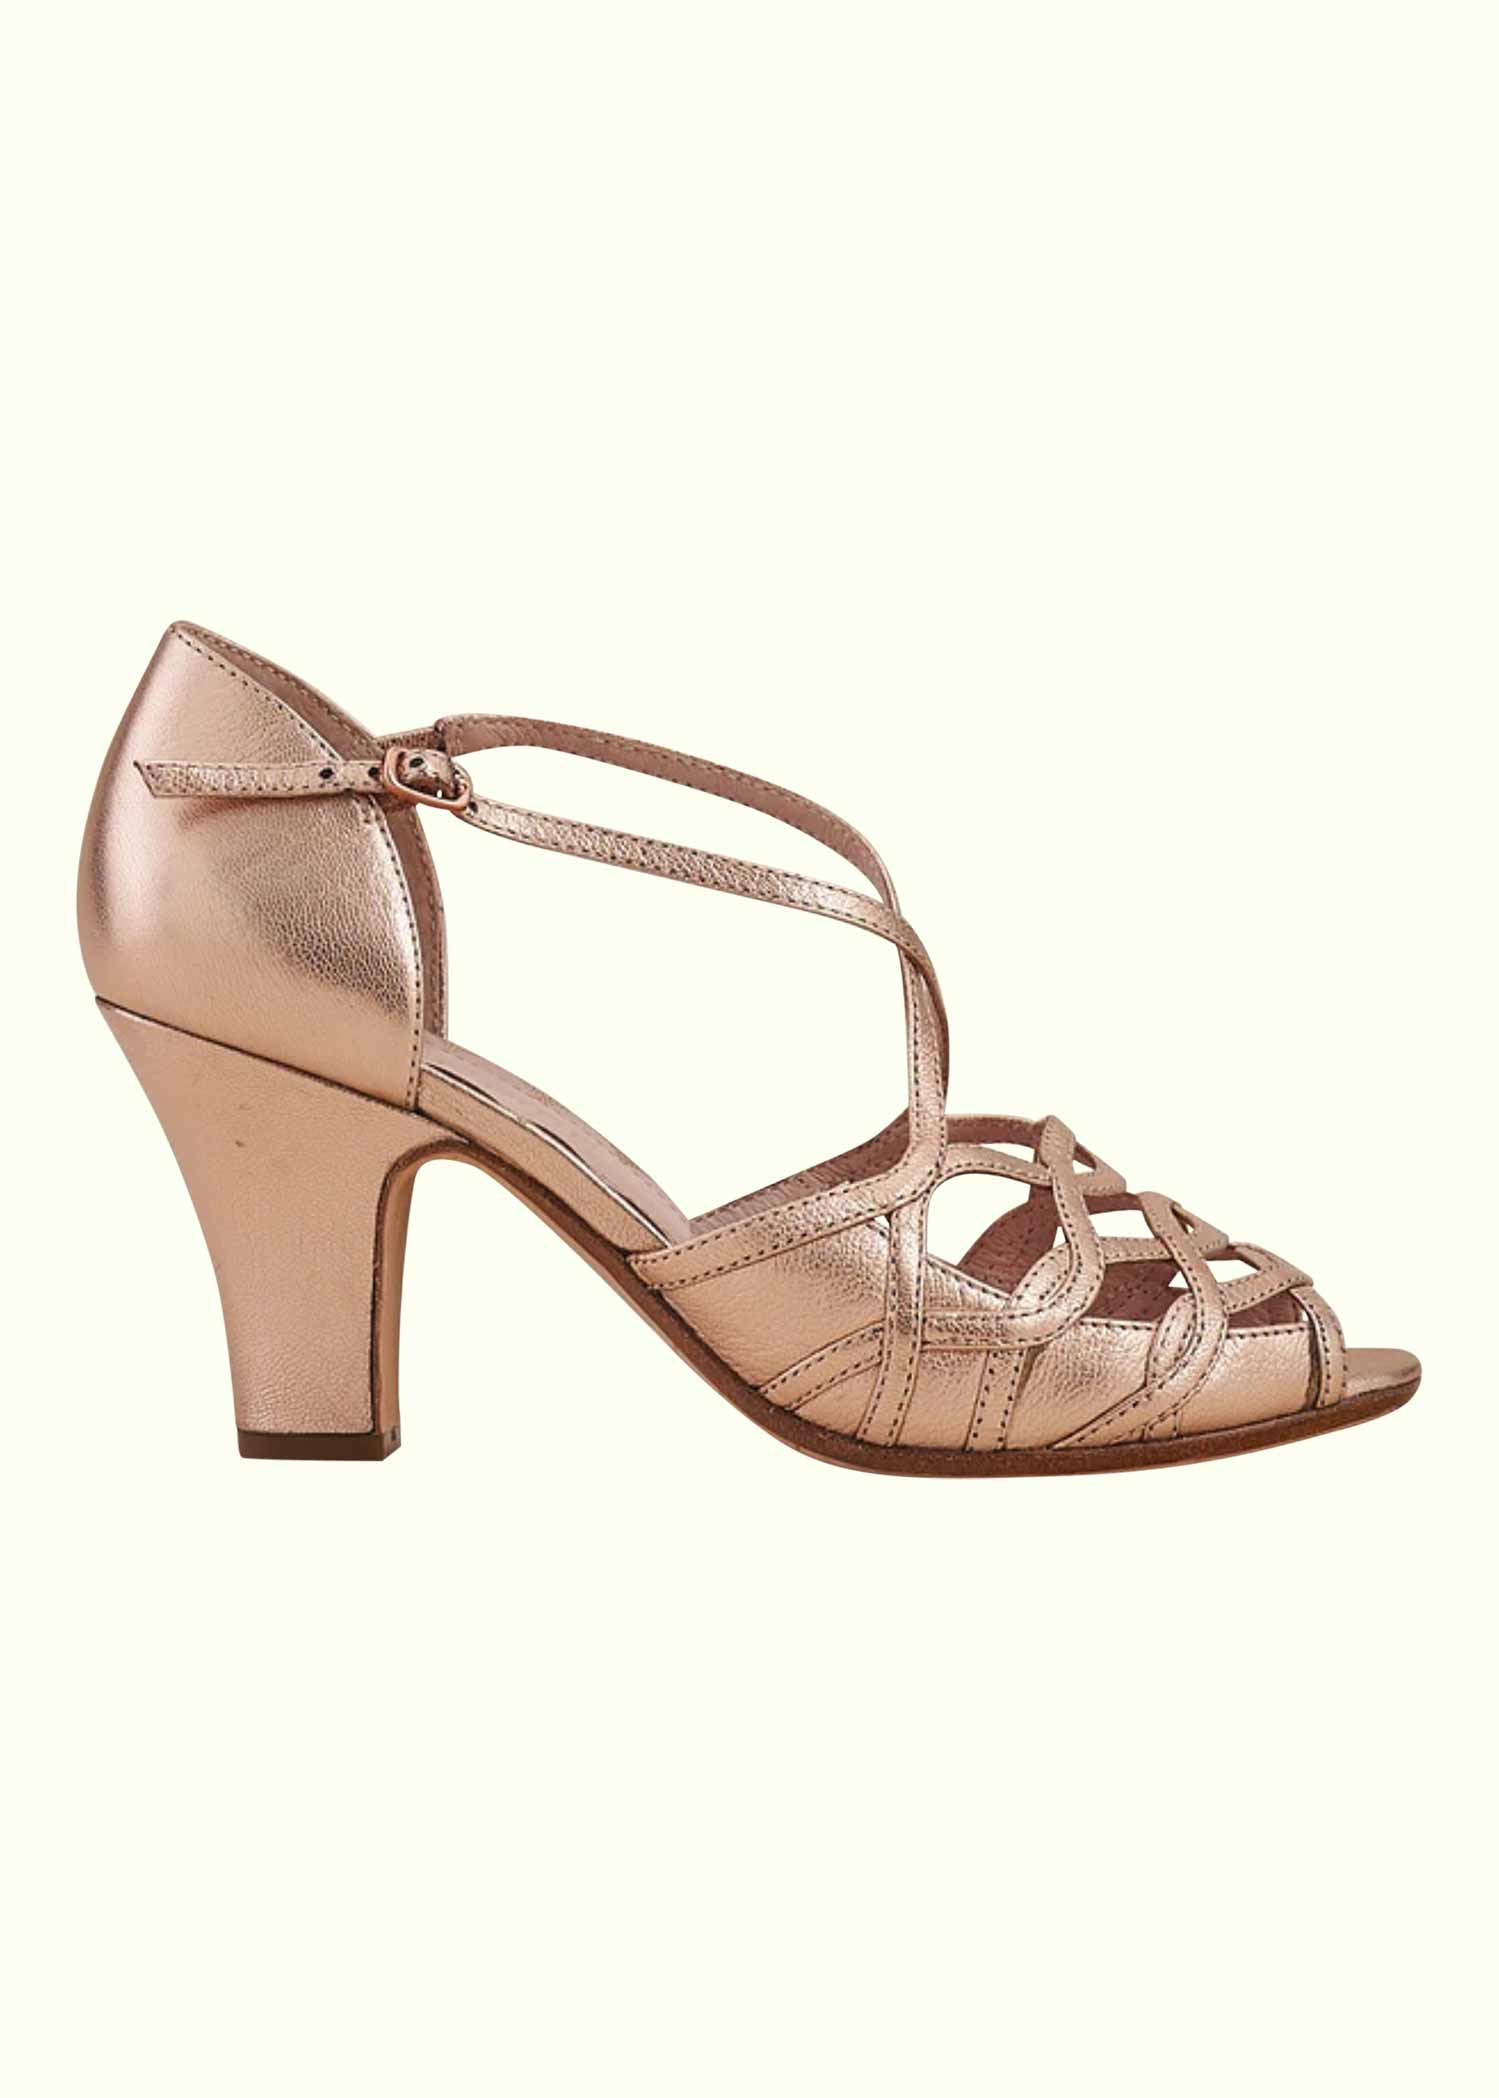 Alele pumps in Rose Gold from Miss L Fire